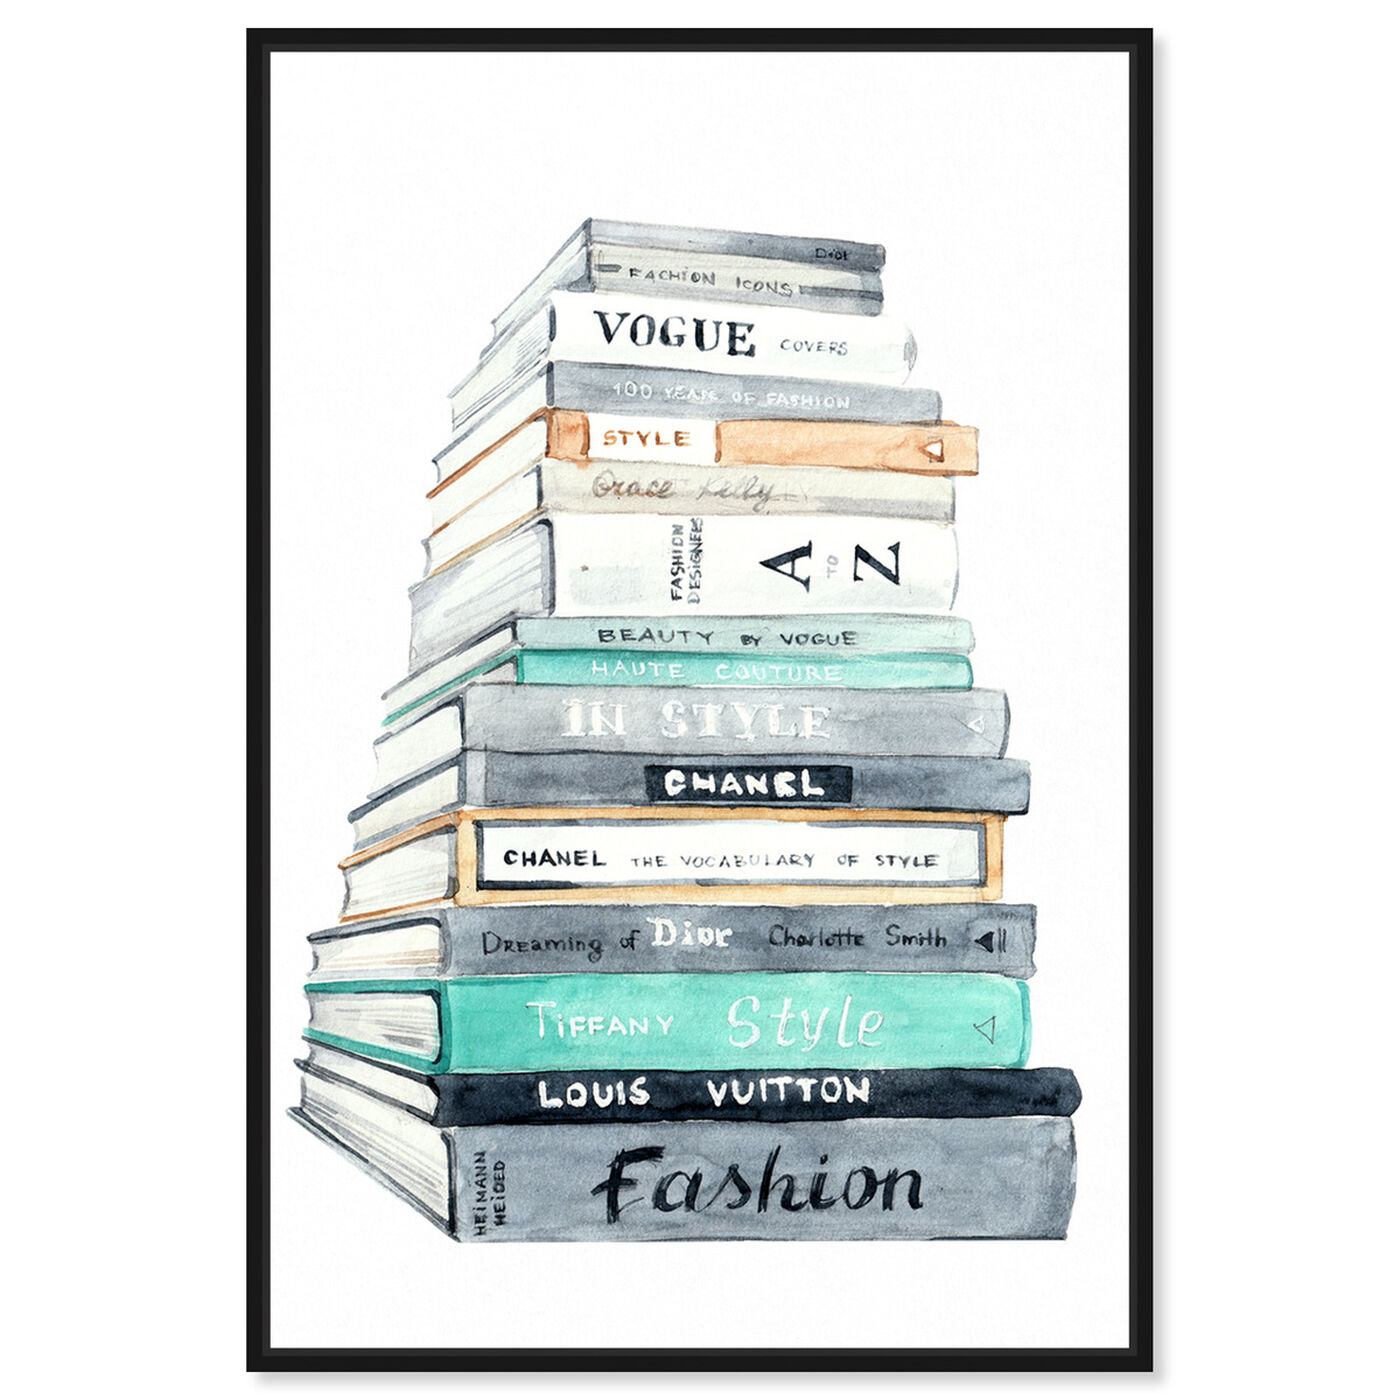 Front view of Fashion Book Perspective featuring fashion and glam and books art.